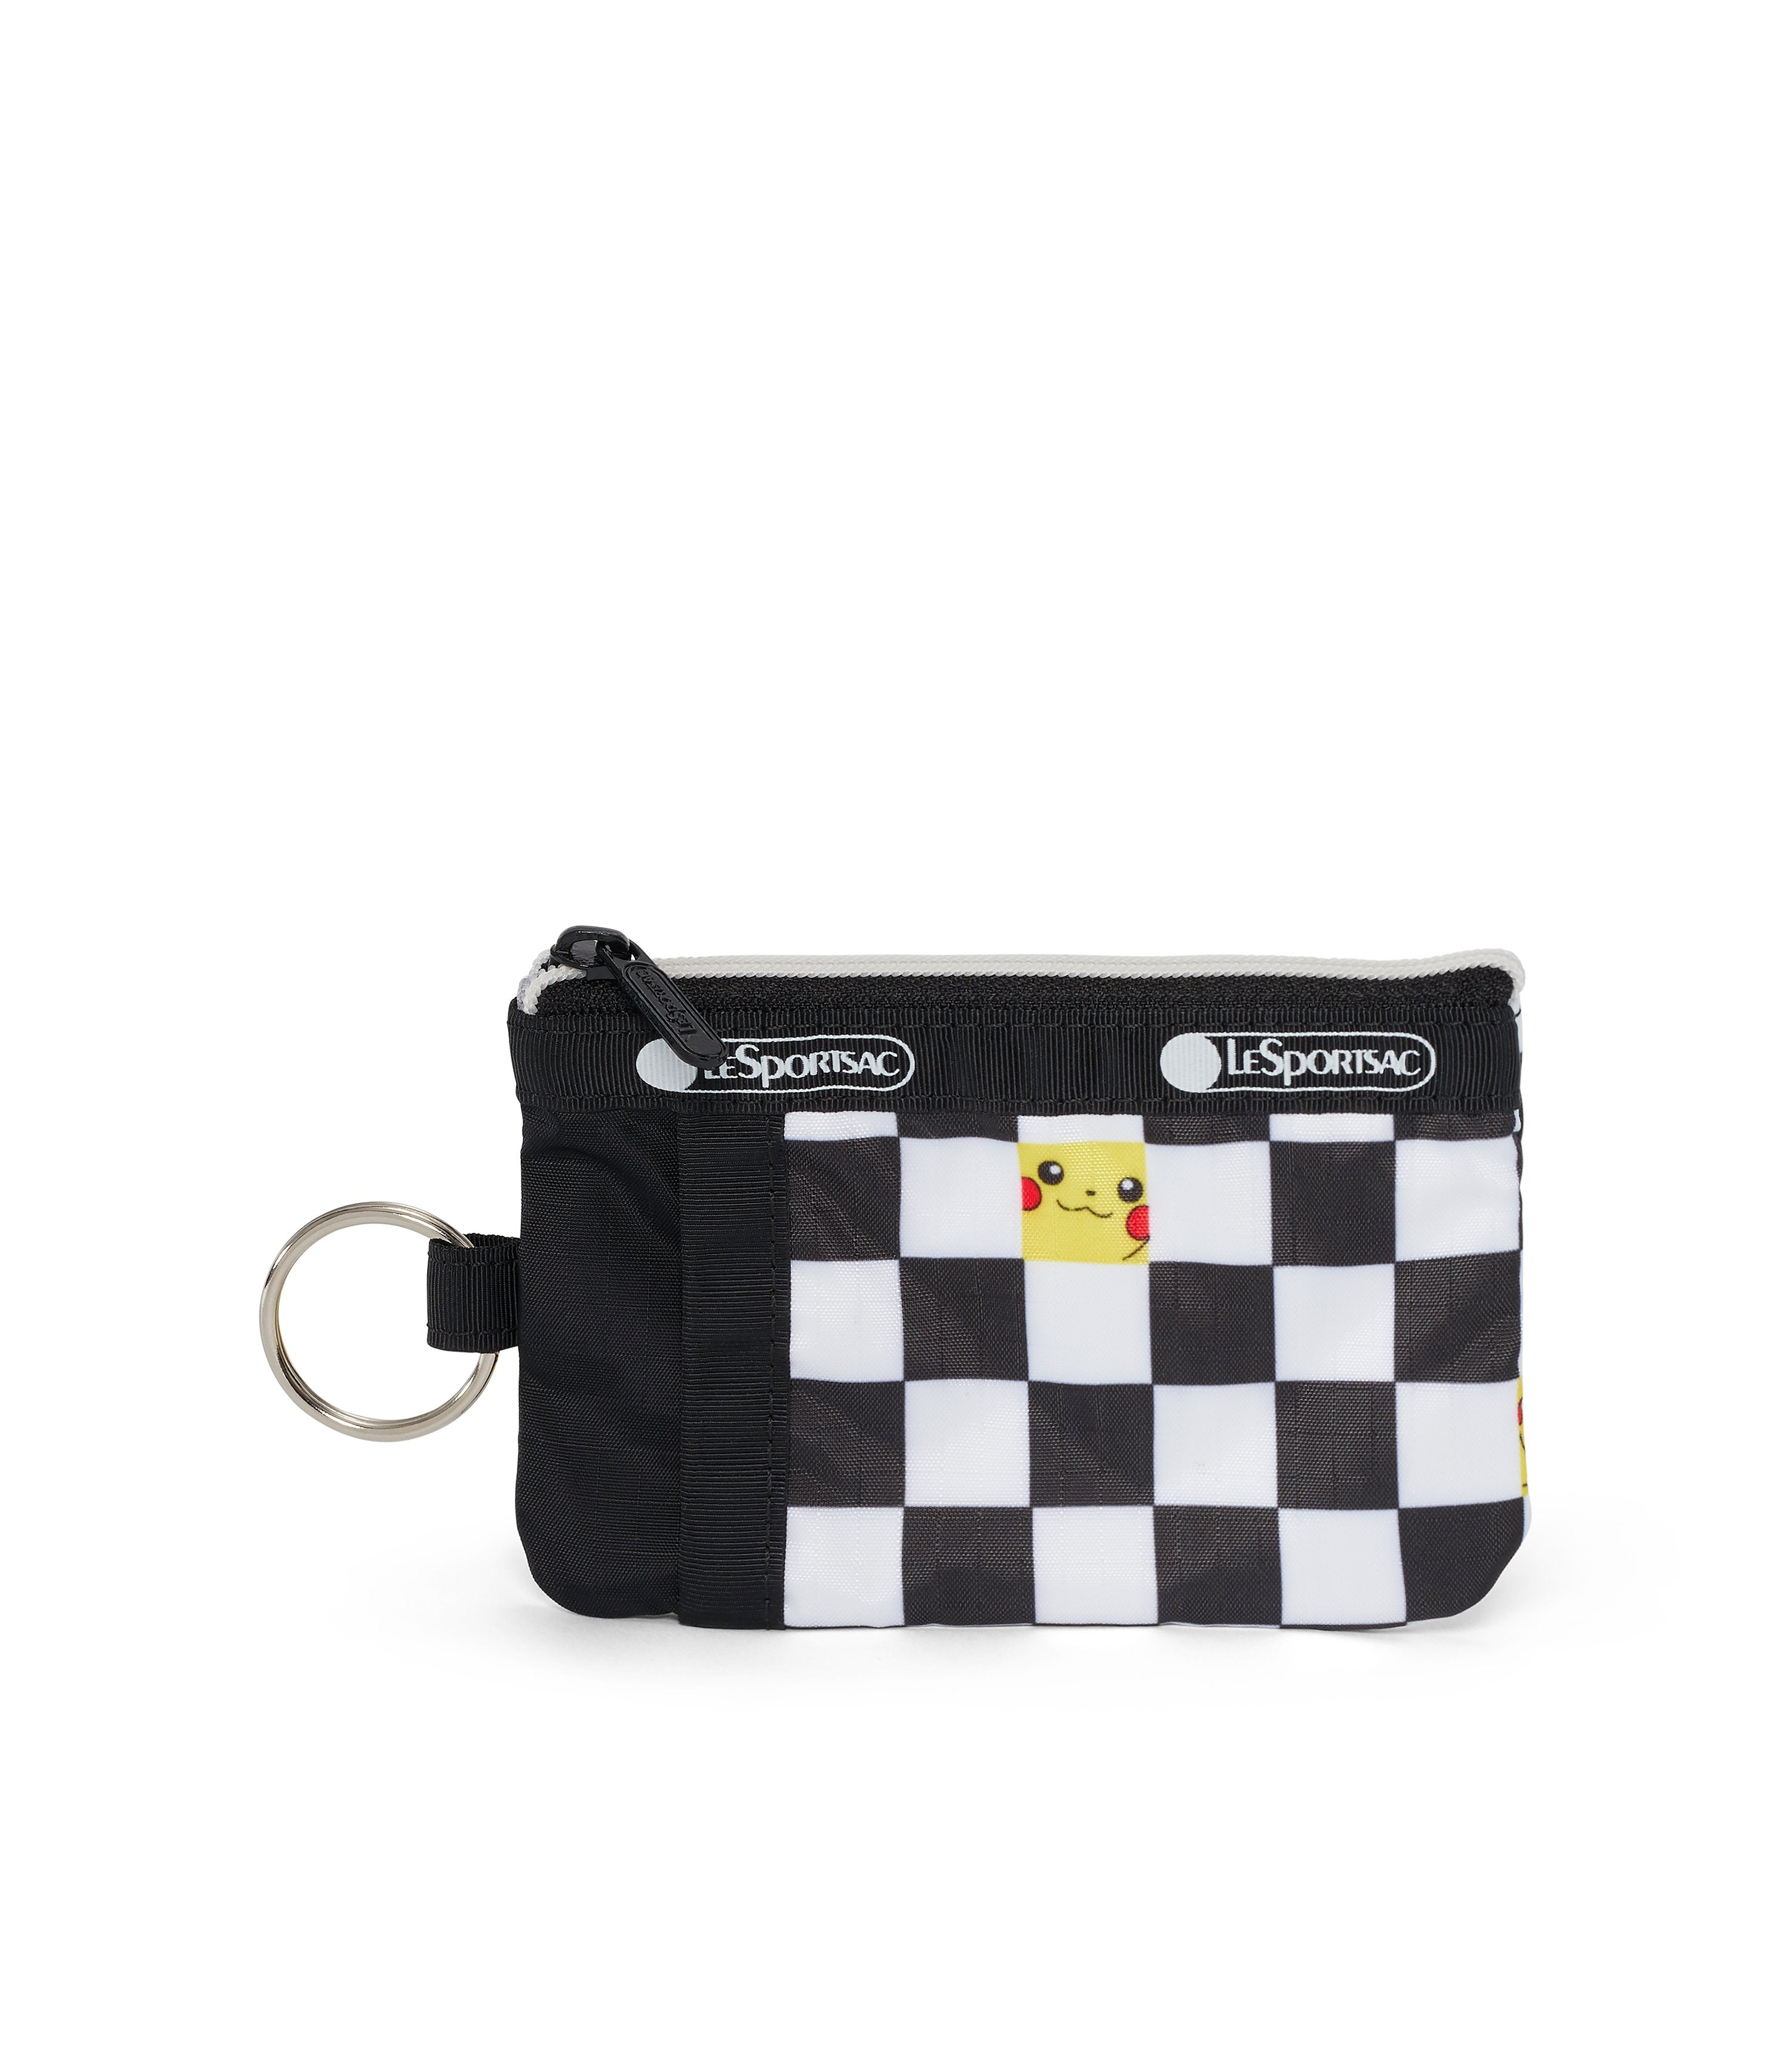 Pokemon - ID Card Case - Accessories - Pikachu Check - Front View